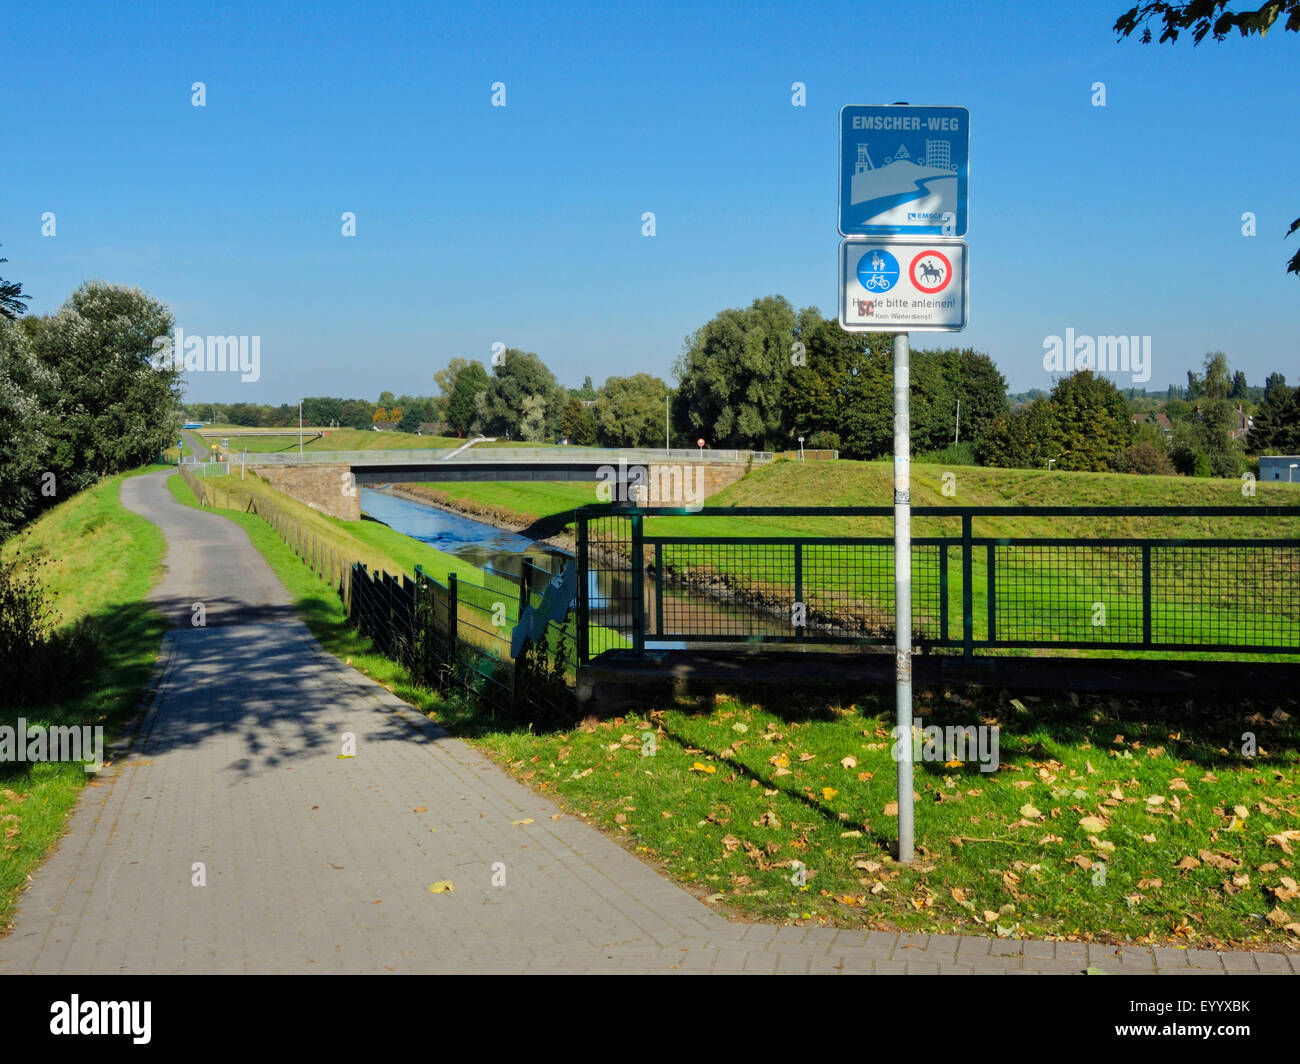 foot and cycle path along canalised River Emscher, Germany, North Rhine-Westphalia, Ruhr Area, Oberhausen - Stock Image